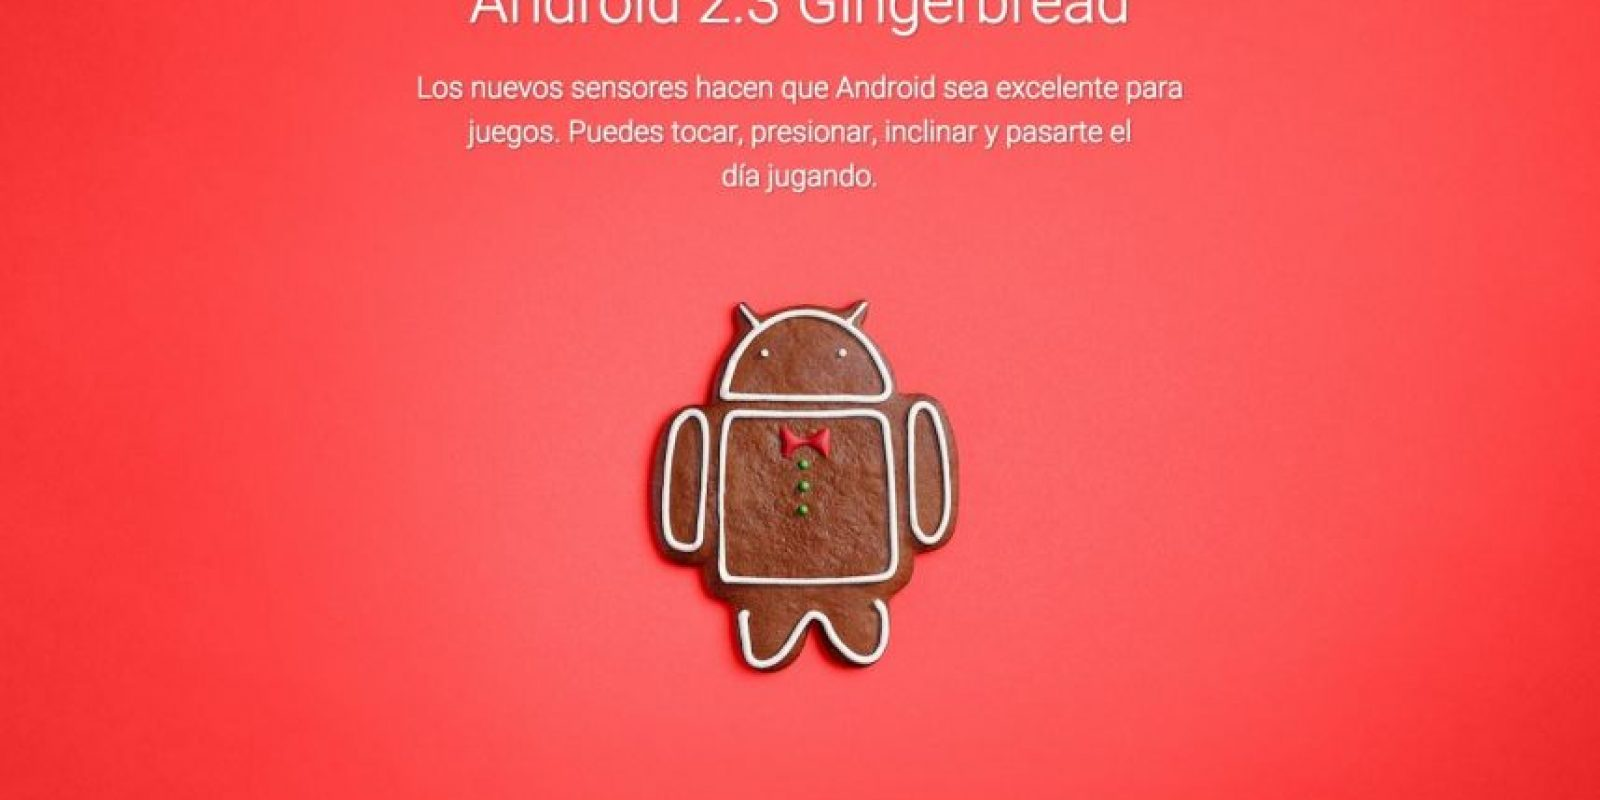 Android 2.3 Gingerbread Foto:Google